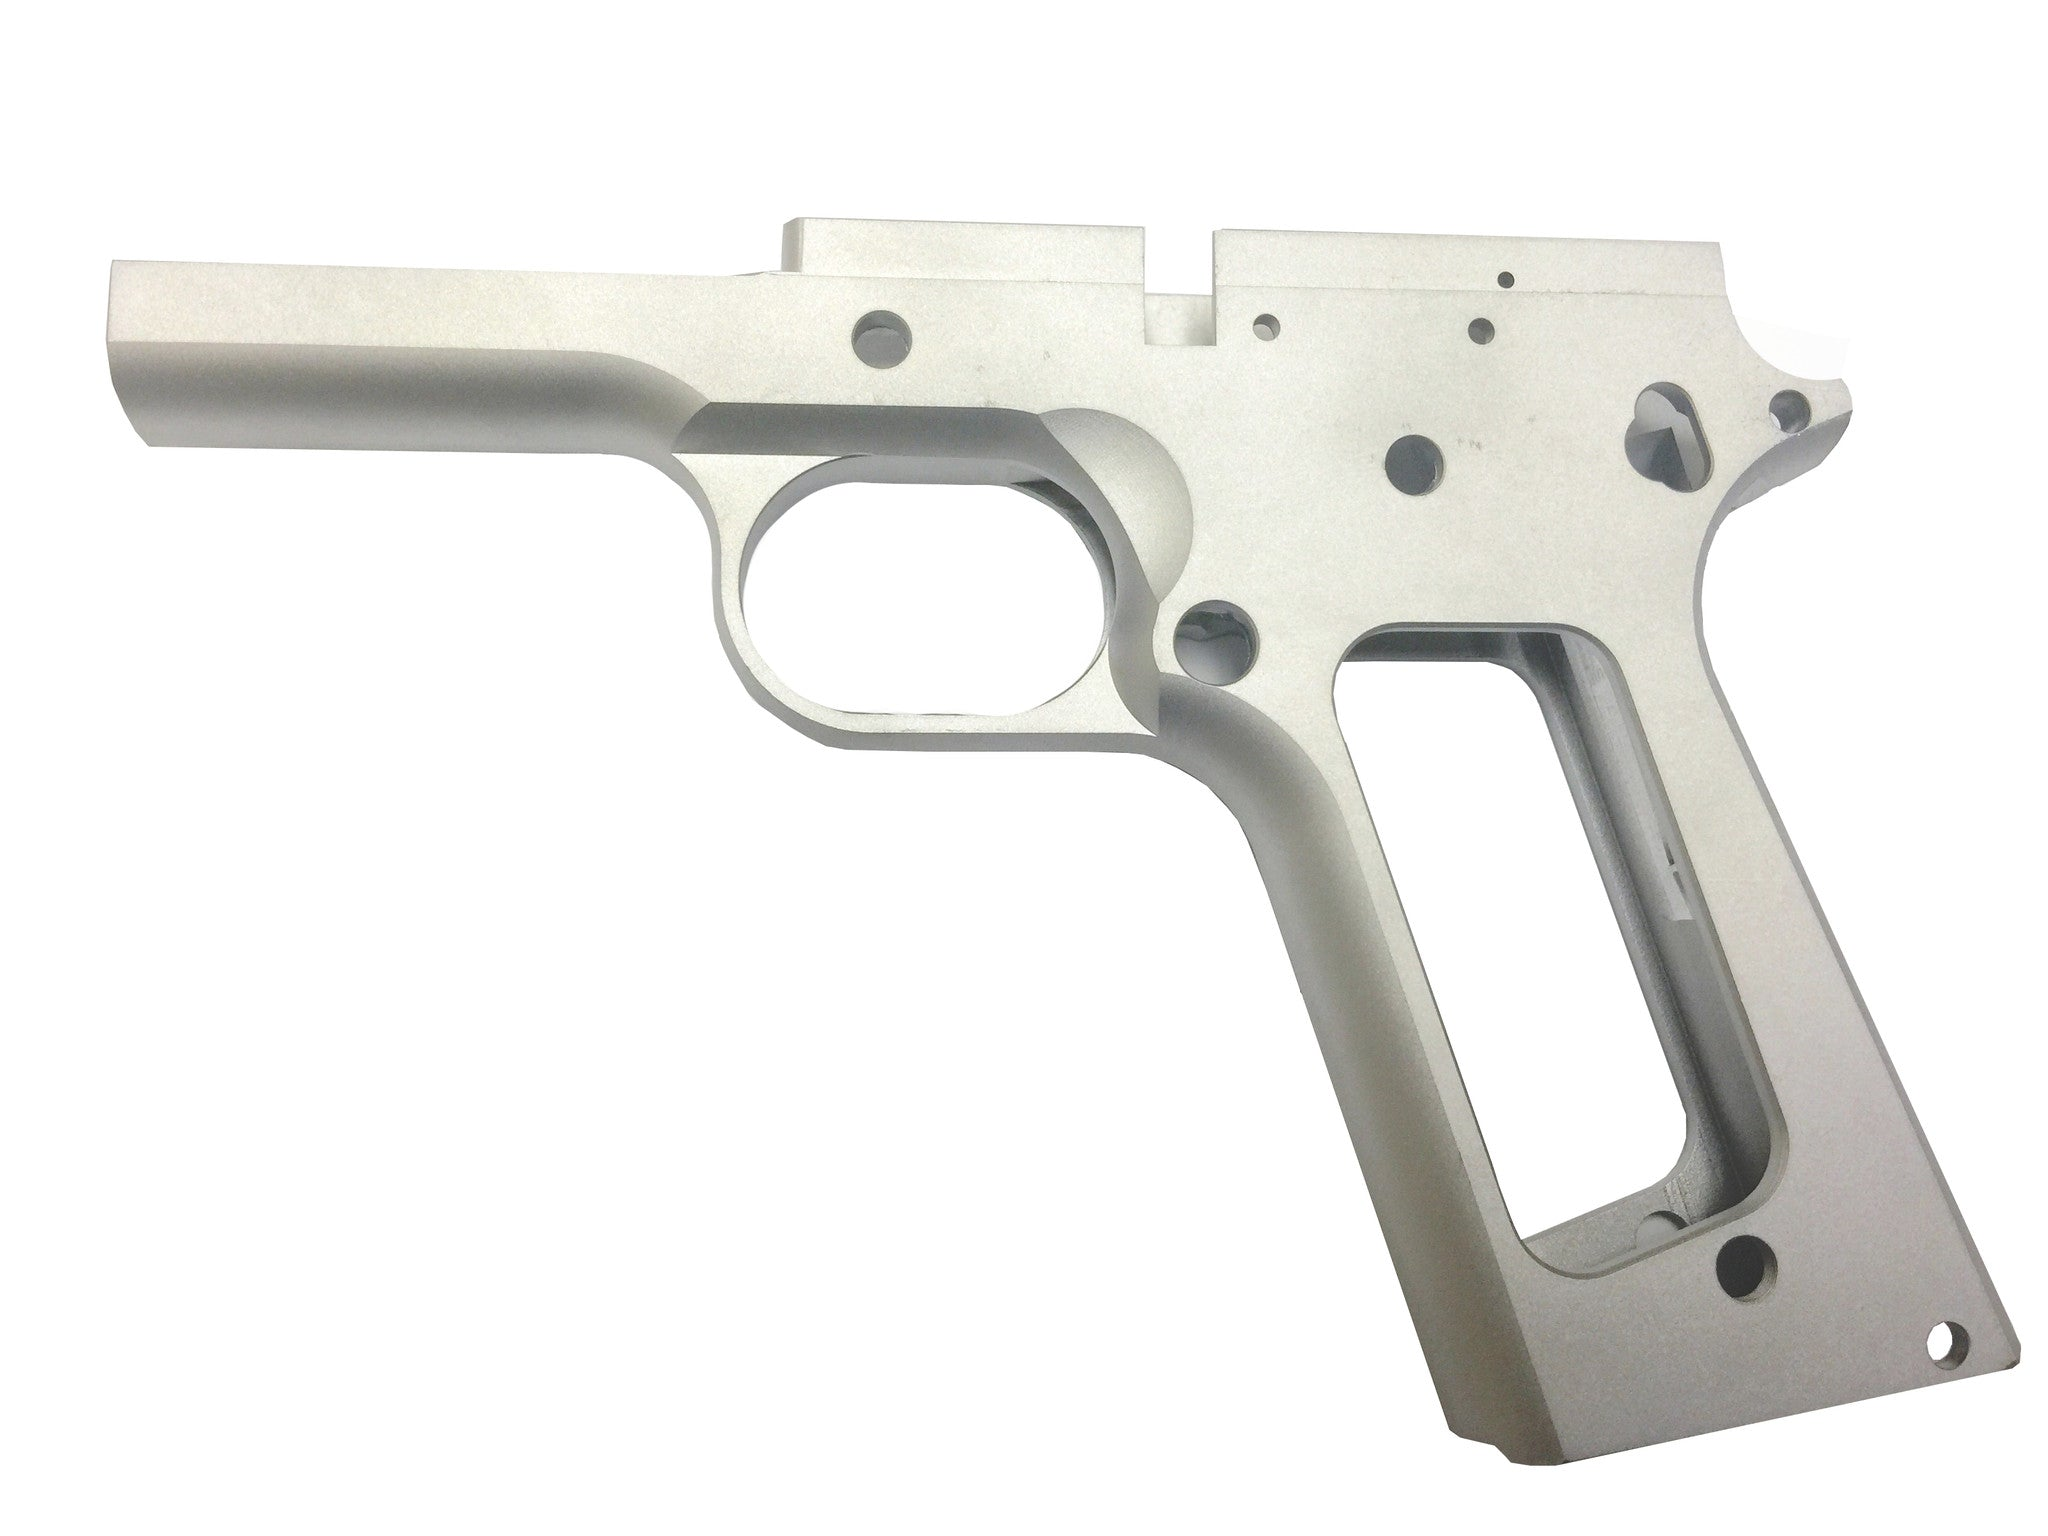 1911 80% FULL SIZE GI FRAME 7075 BILLET ALUMINUM SMOOTH GRIP | 1911 ...